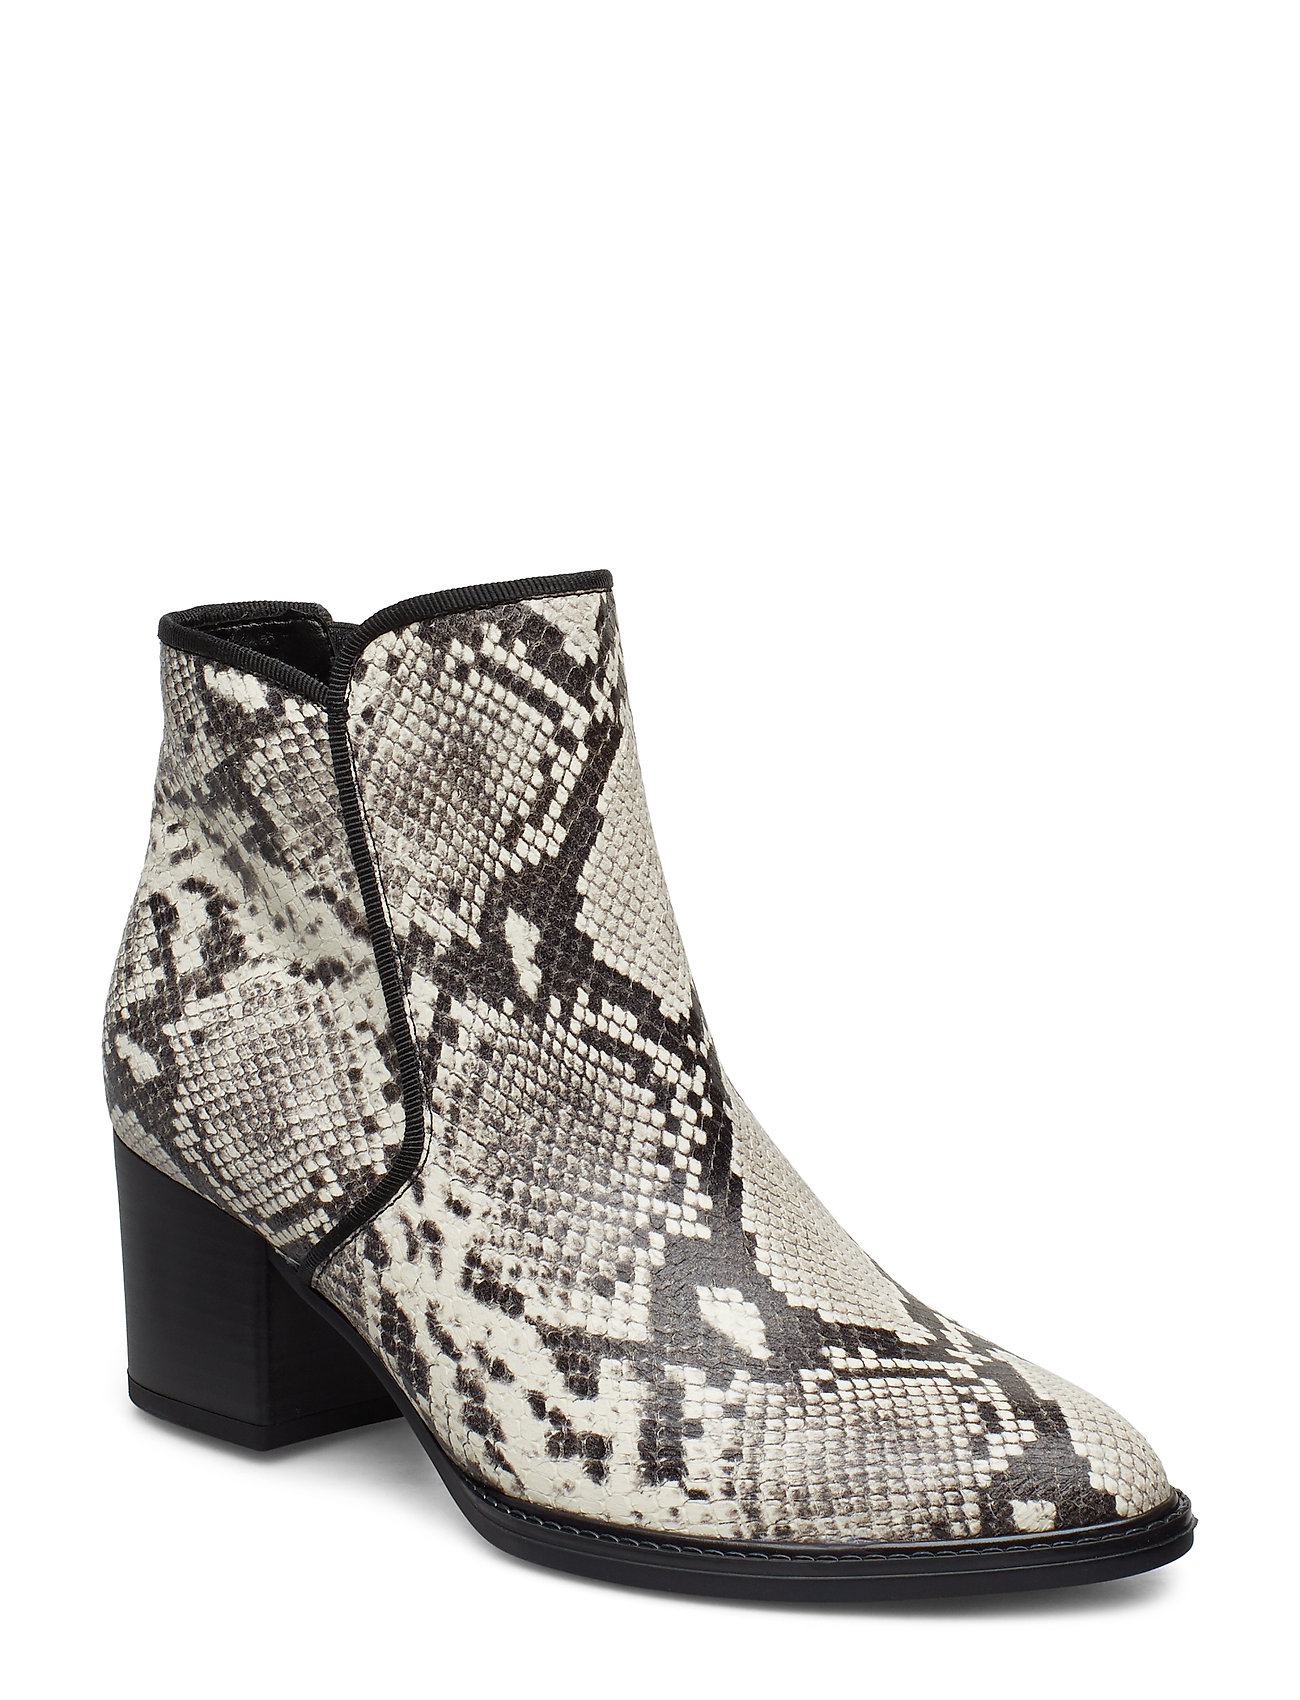 Image of Ankle Boots Shoes Boots Ankle Boots Ankle Boot - Heel Multi/mønstret Gabor (3406237403)